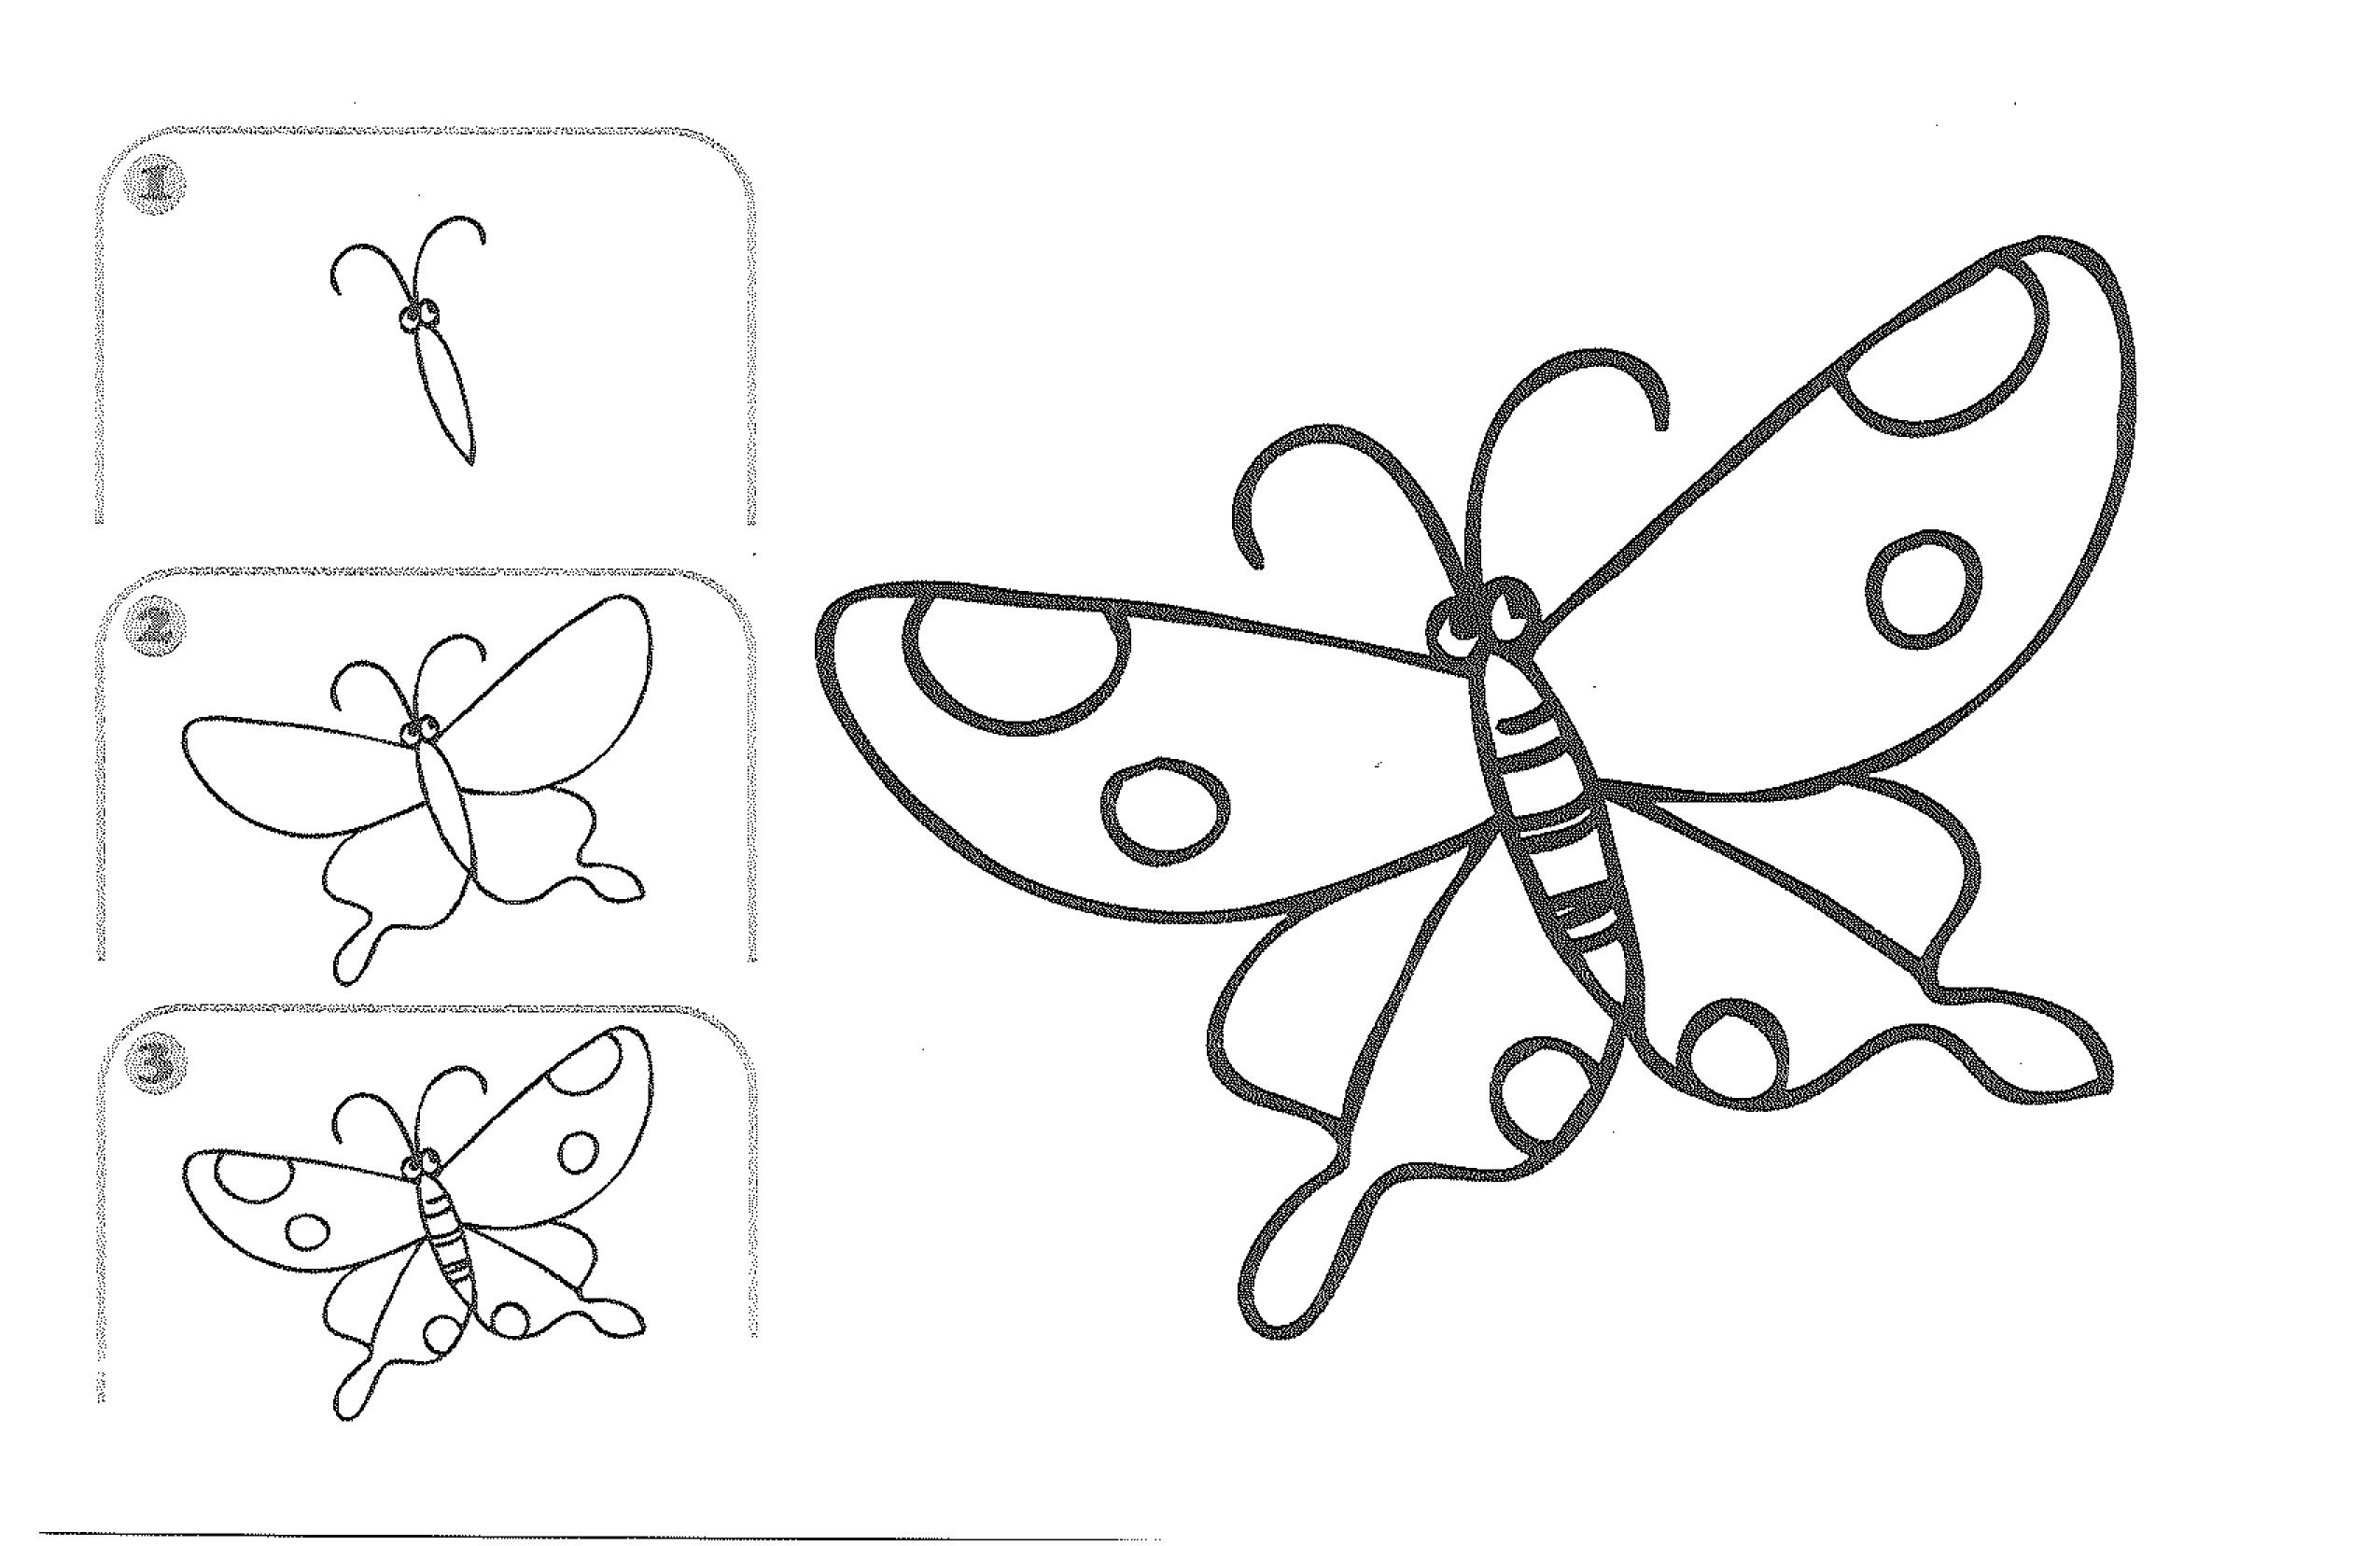 drawings by kids kids learn to draw insects teaching kids drawing free printable - Images Of Drawings For Kids